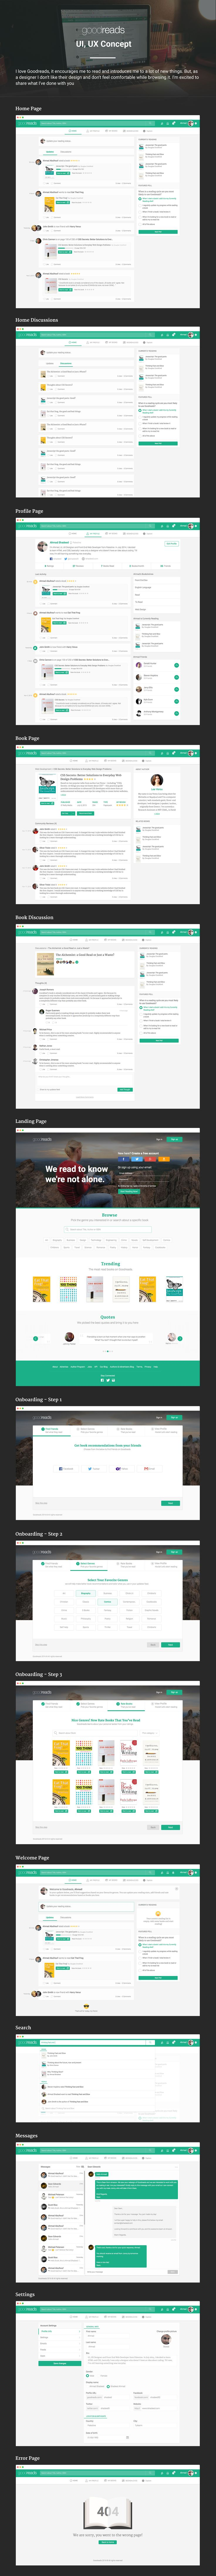 Goodreads is a well known website for people who love reading. In this project, I tried to make the look and feel cleaner and more elegant. Hope you like it. :)